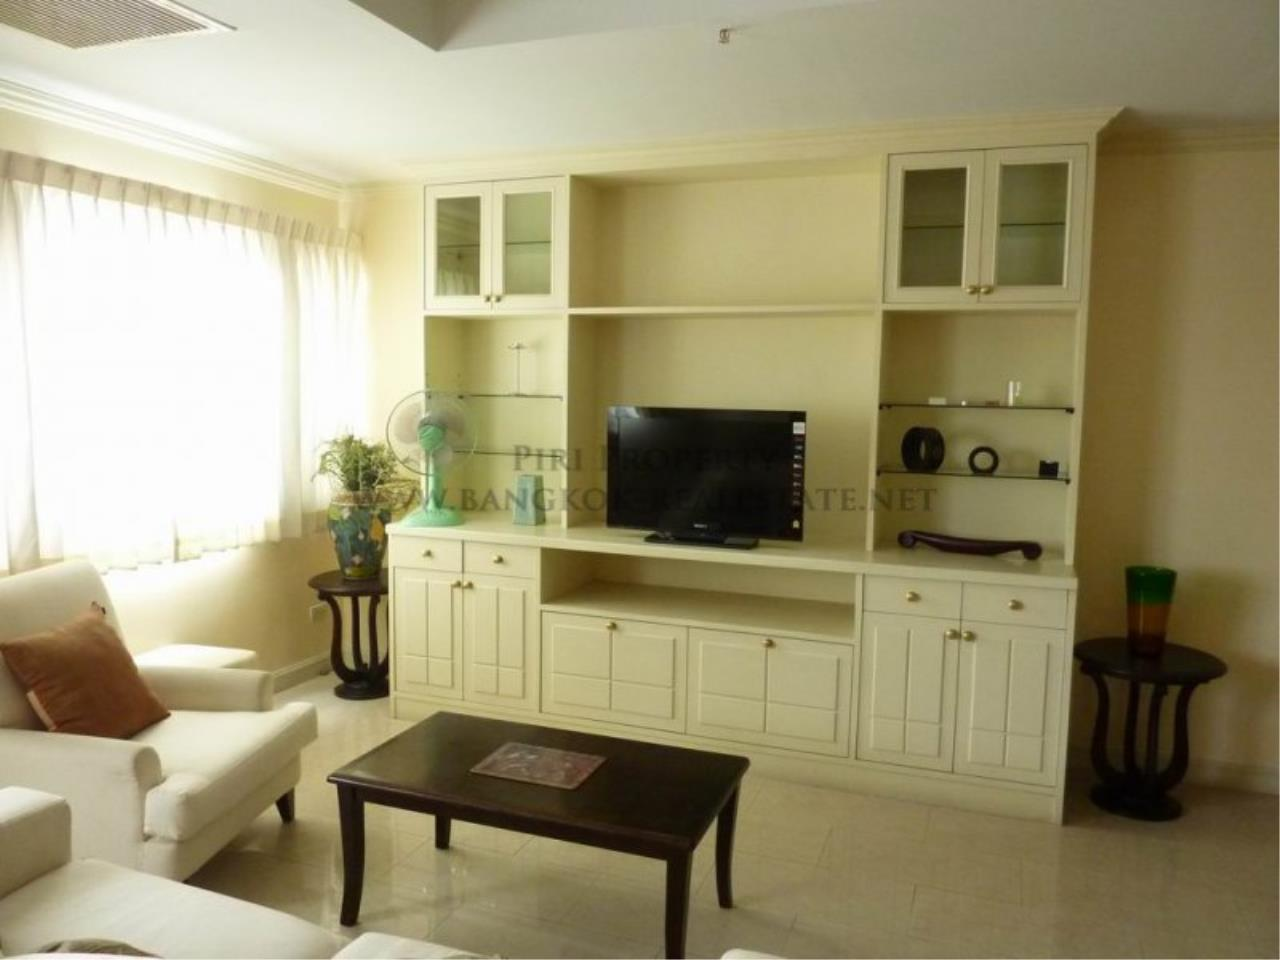 Piri Property Agency's Very spacious 2 Bedroom Condo in Ploenchit for Rent - Wittayu Complex 5